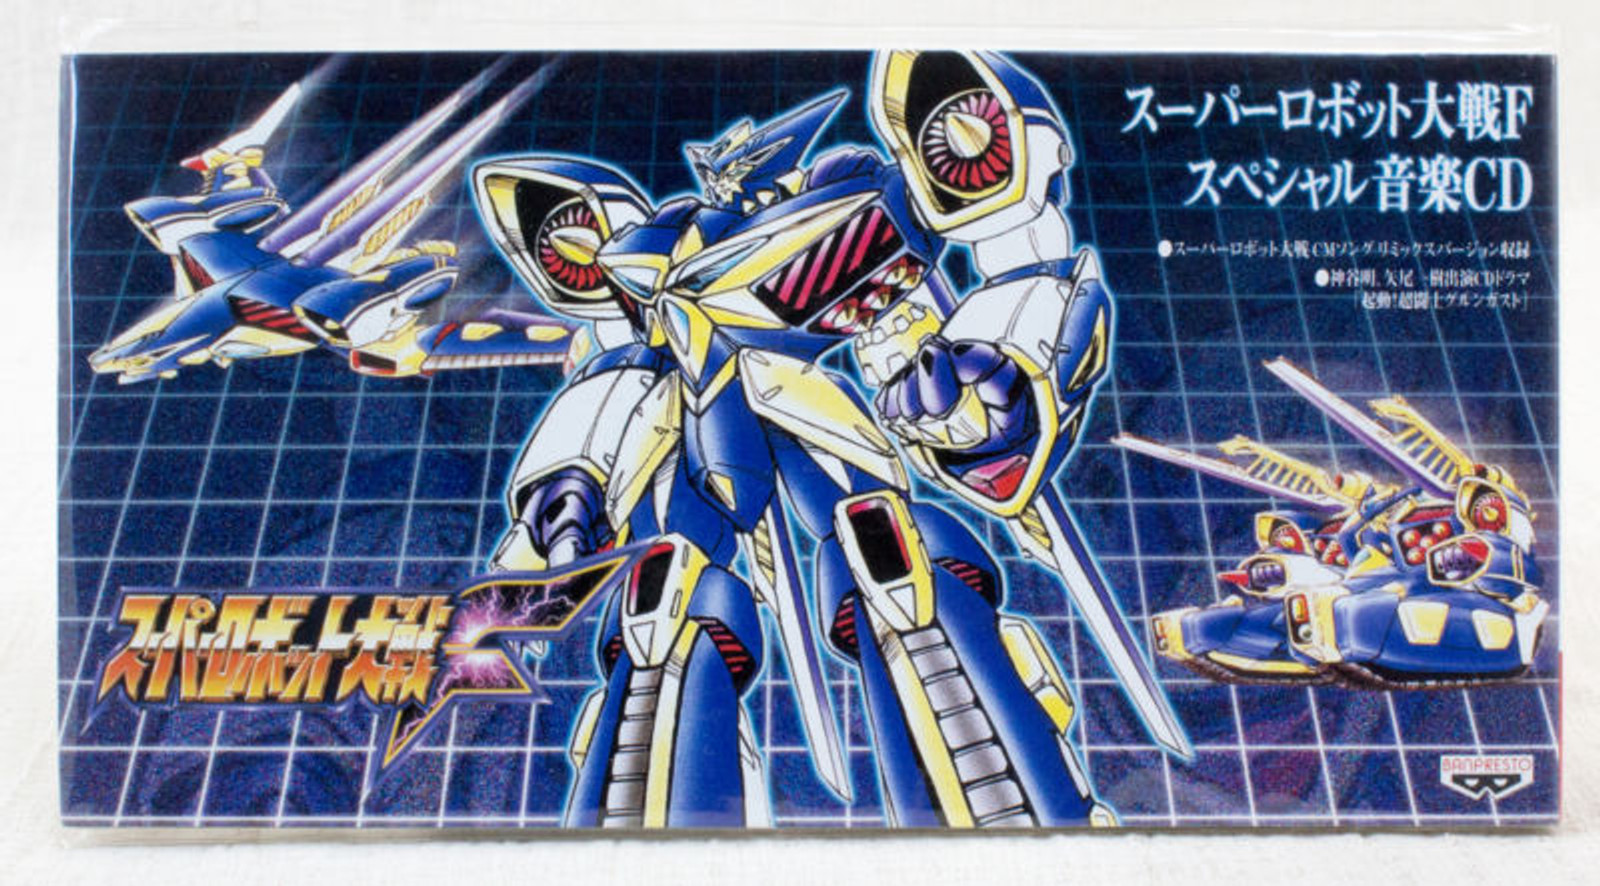 Super Robot Taisen Wars F Special Music 8cm CD(Novelty/Single CD) JAPAN GAME